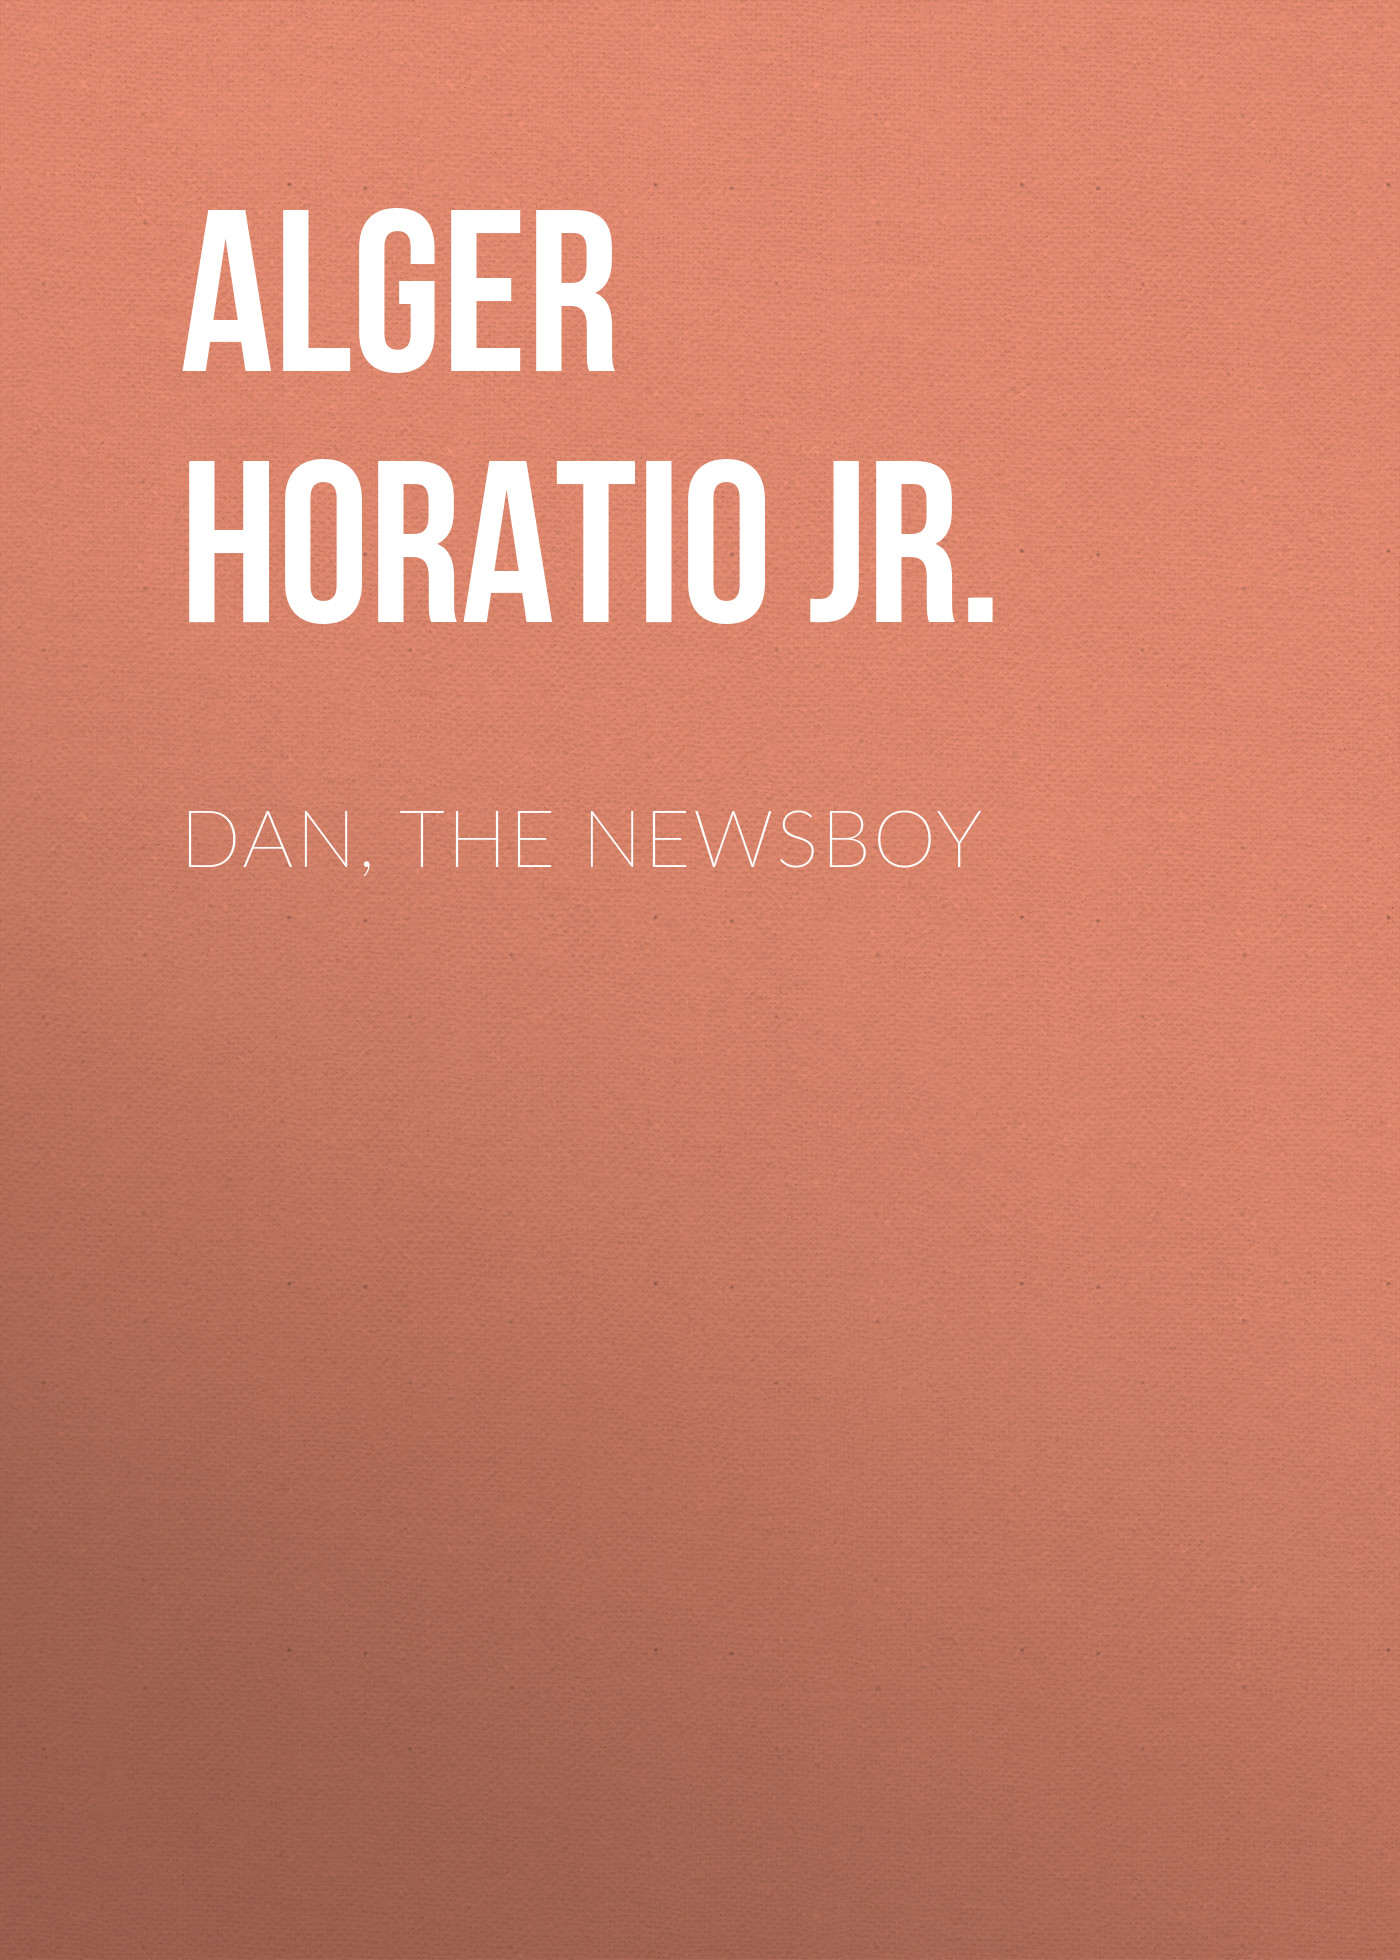 купить Alger Horatio Jr. Dan, The Newsboy